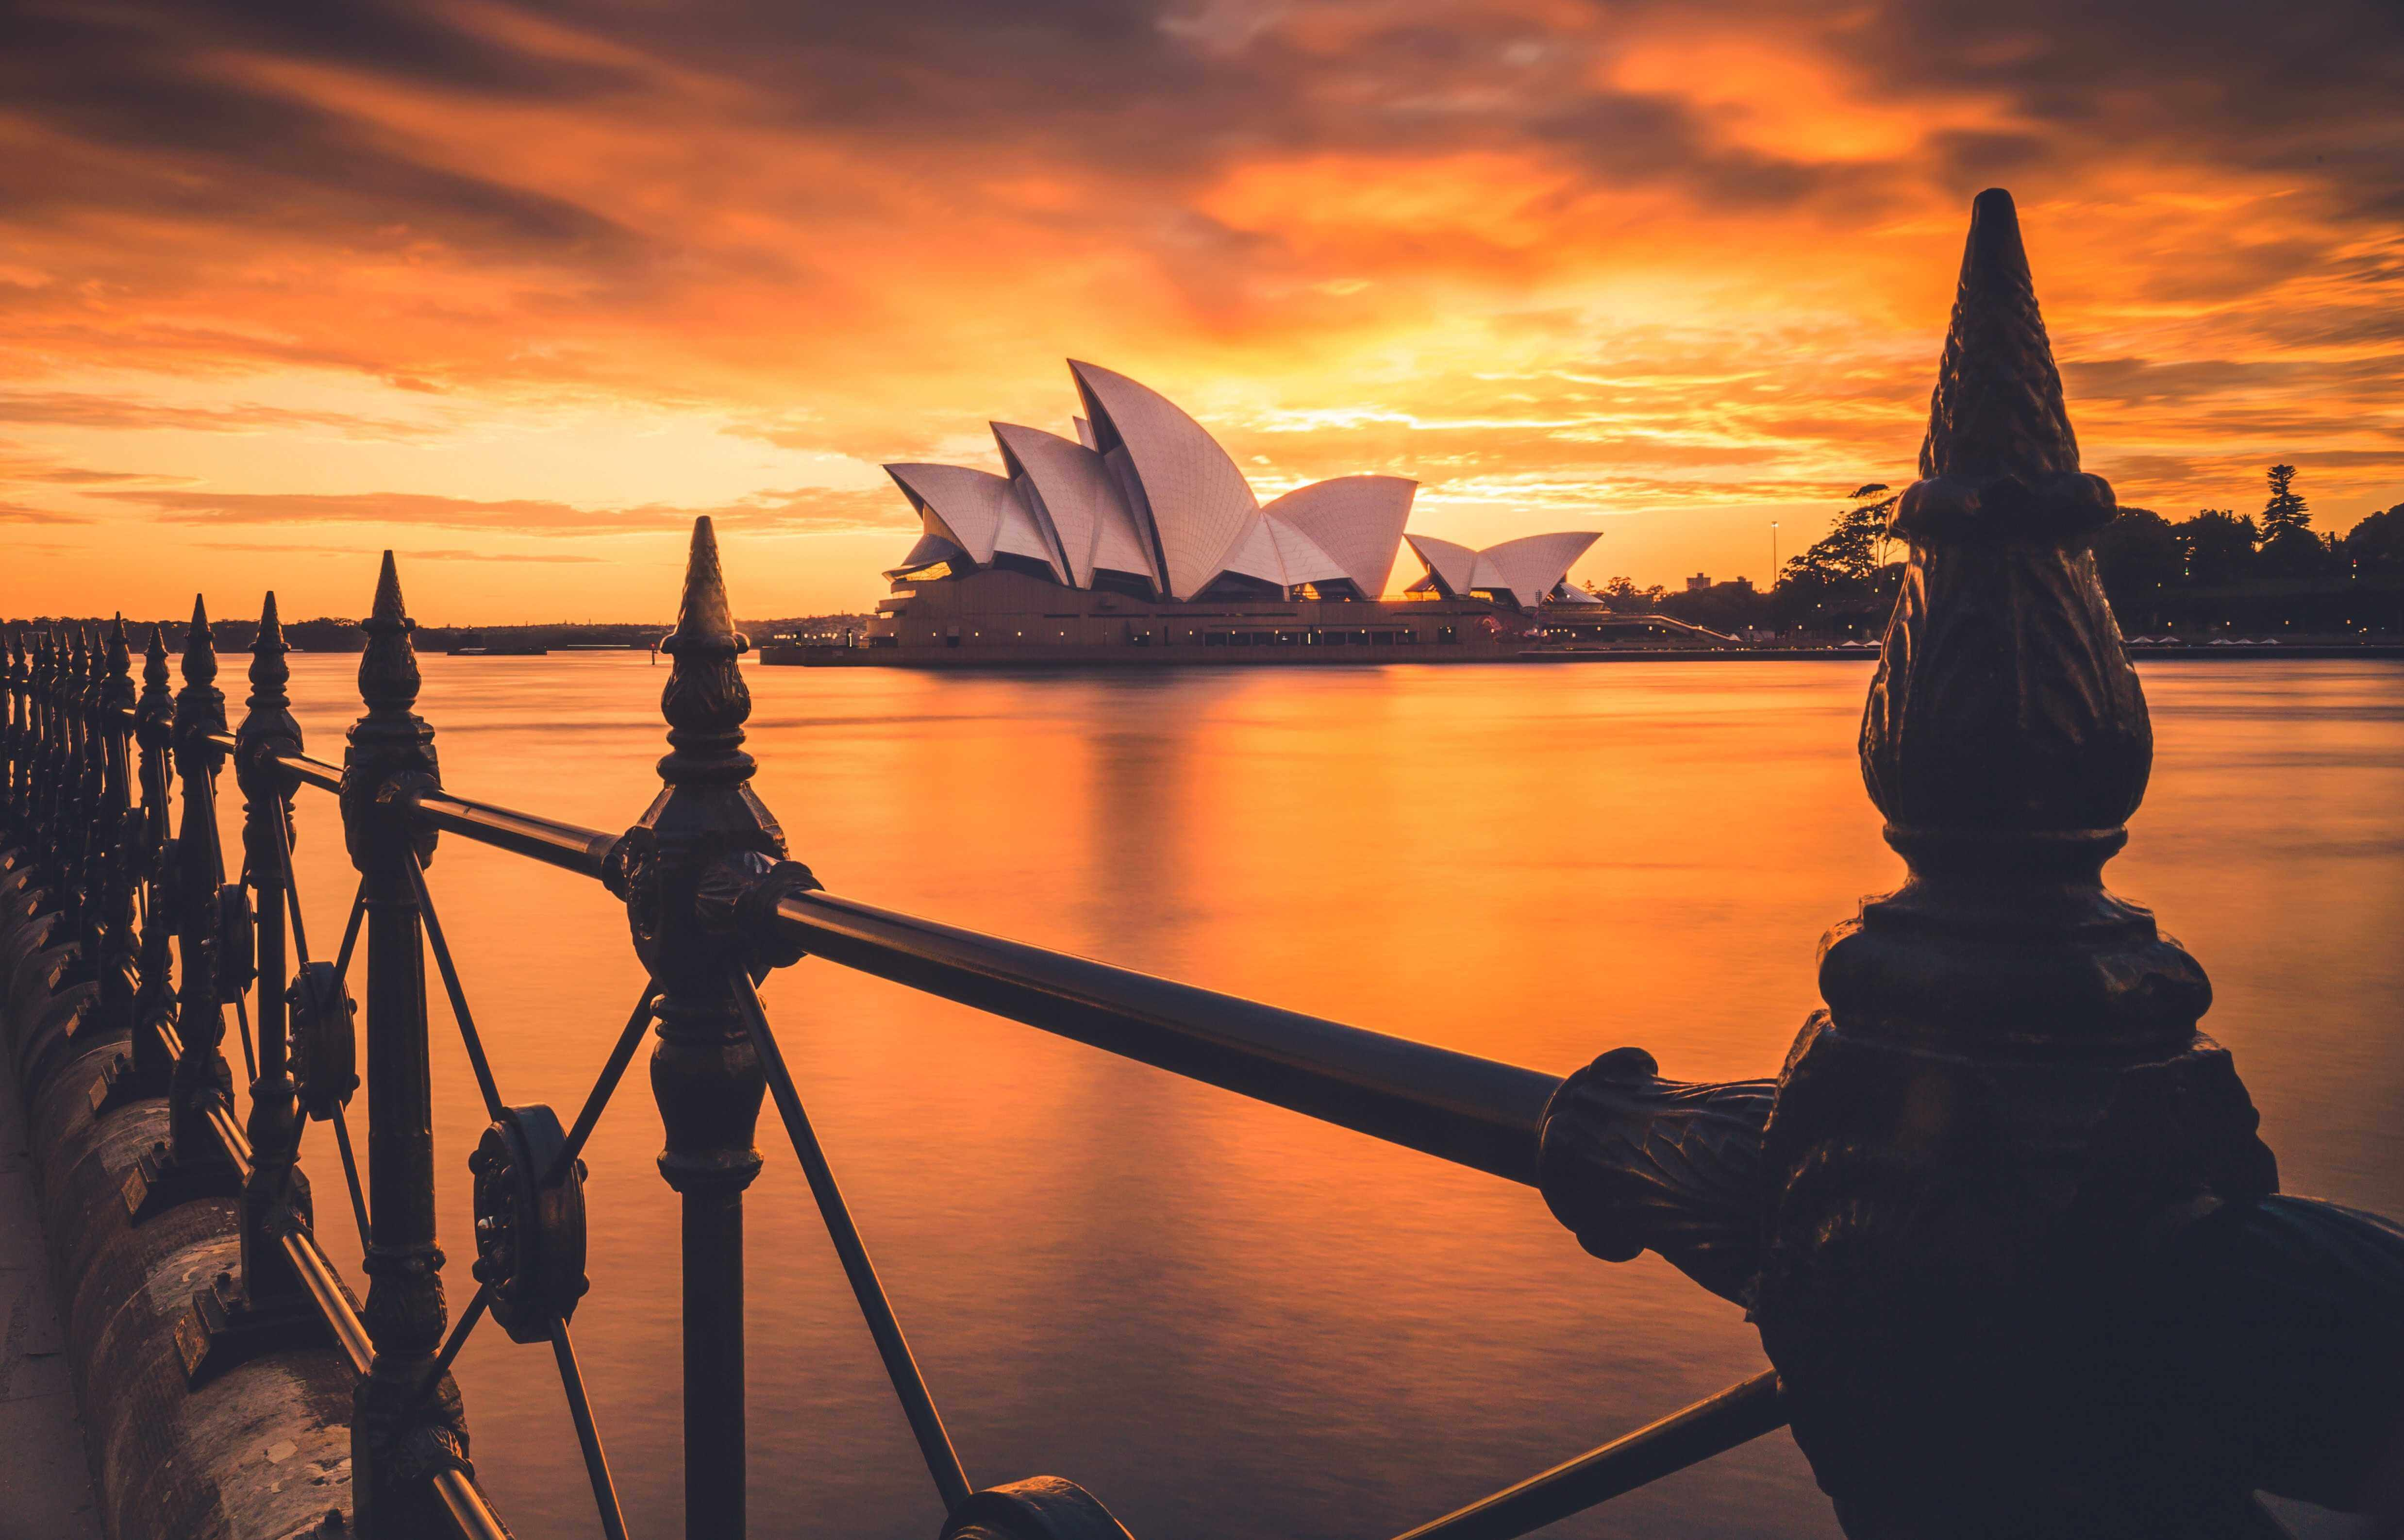 The Sydney Opera House was built in 1973 and is a UNESCO World Heritage site.